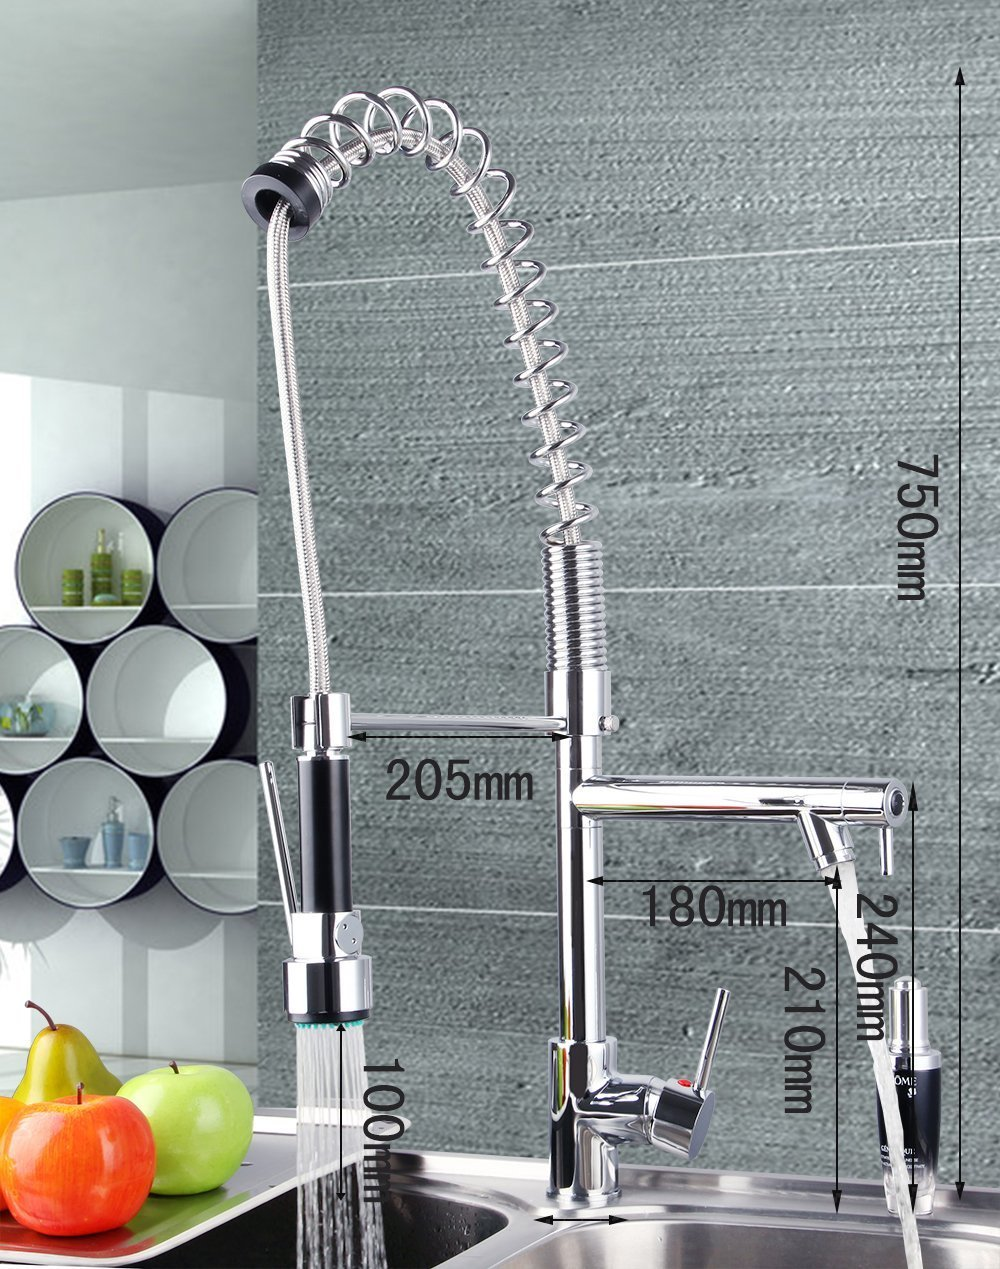 Contemporary Pull Down Kitchen Sink Faucet Pull Out Spray with Lock Sprayer Swivel Spout Brass Mixer Tap Chrome US Shipping